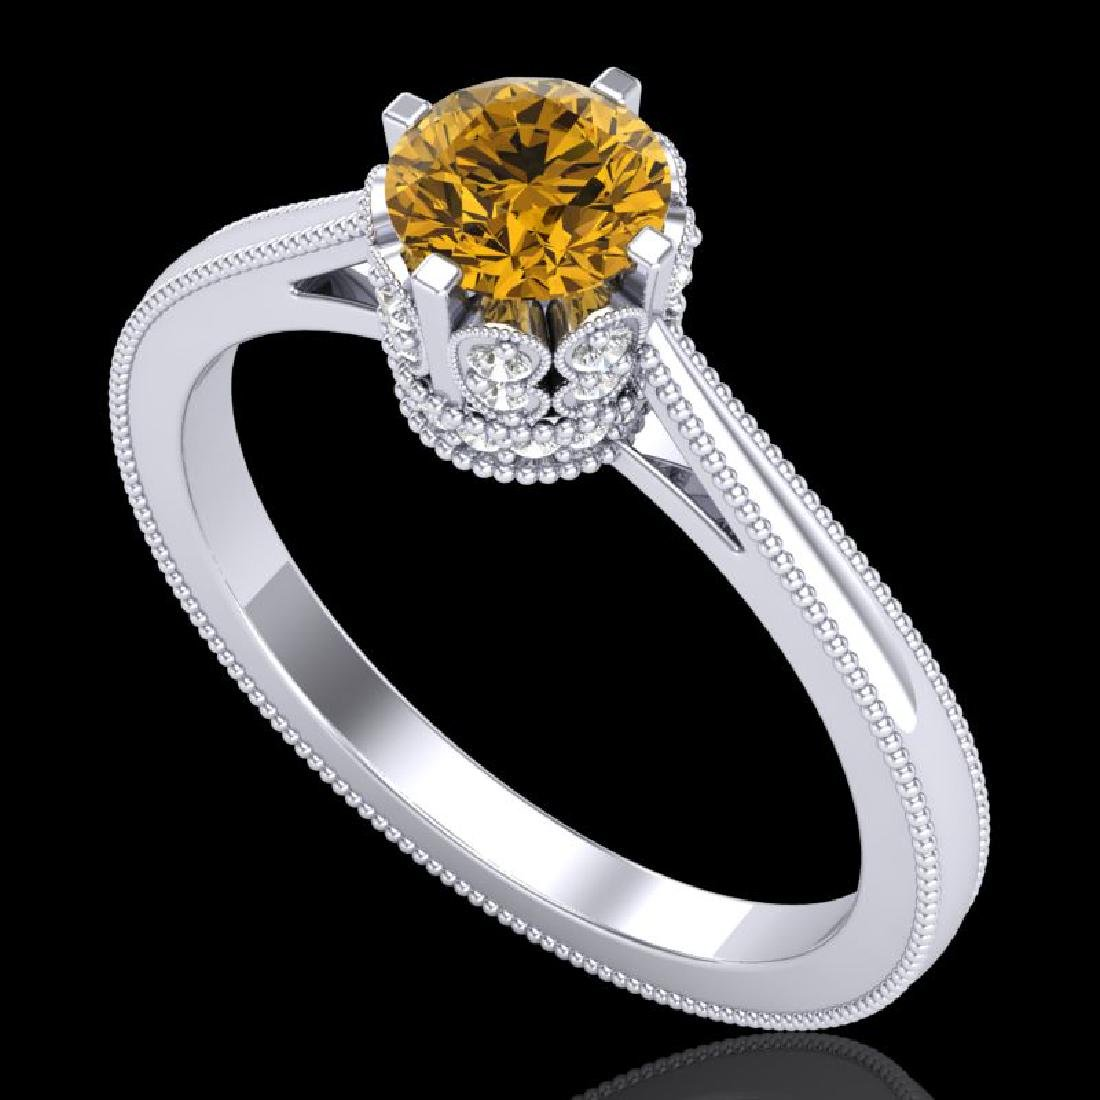 0.81 CTW Intense Fancy Yellow Diamond Engagement Art